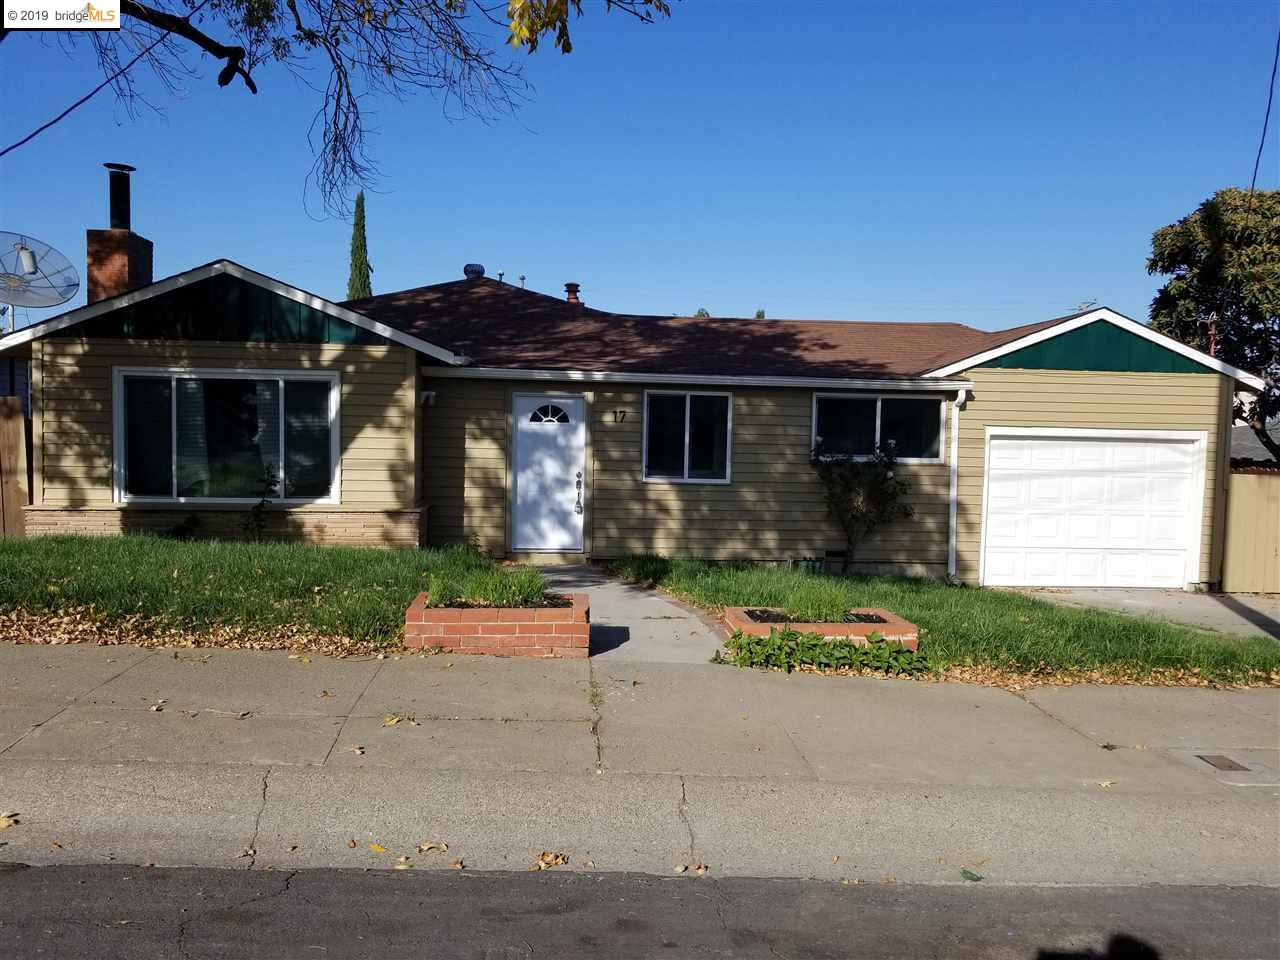 17 Hill St, BAY POINT, CA 94565